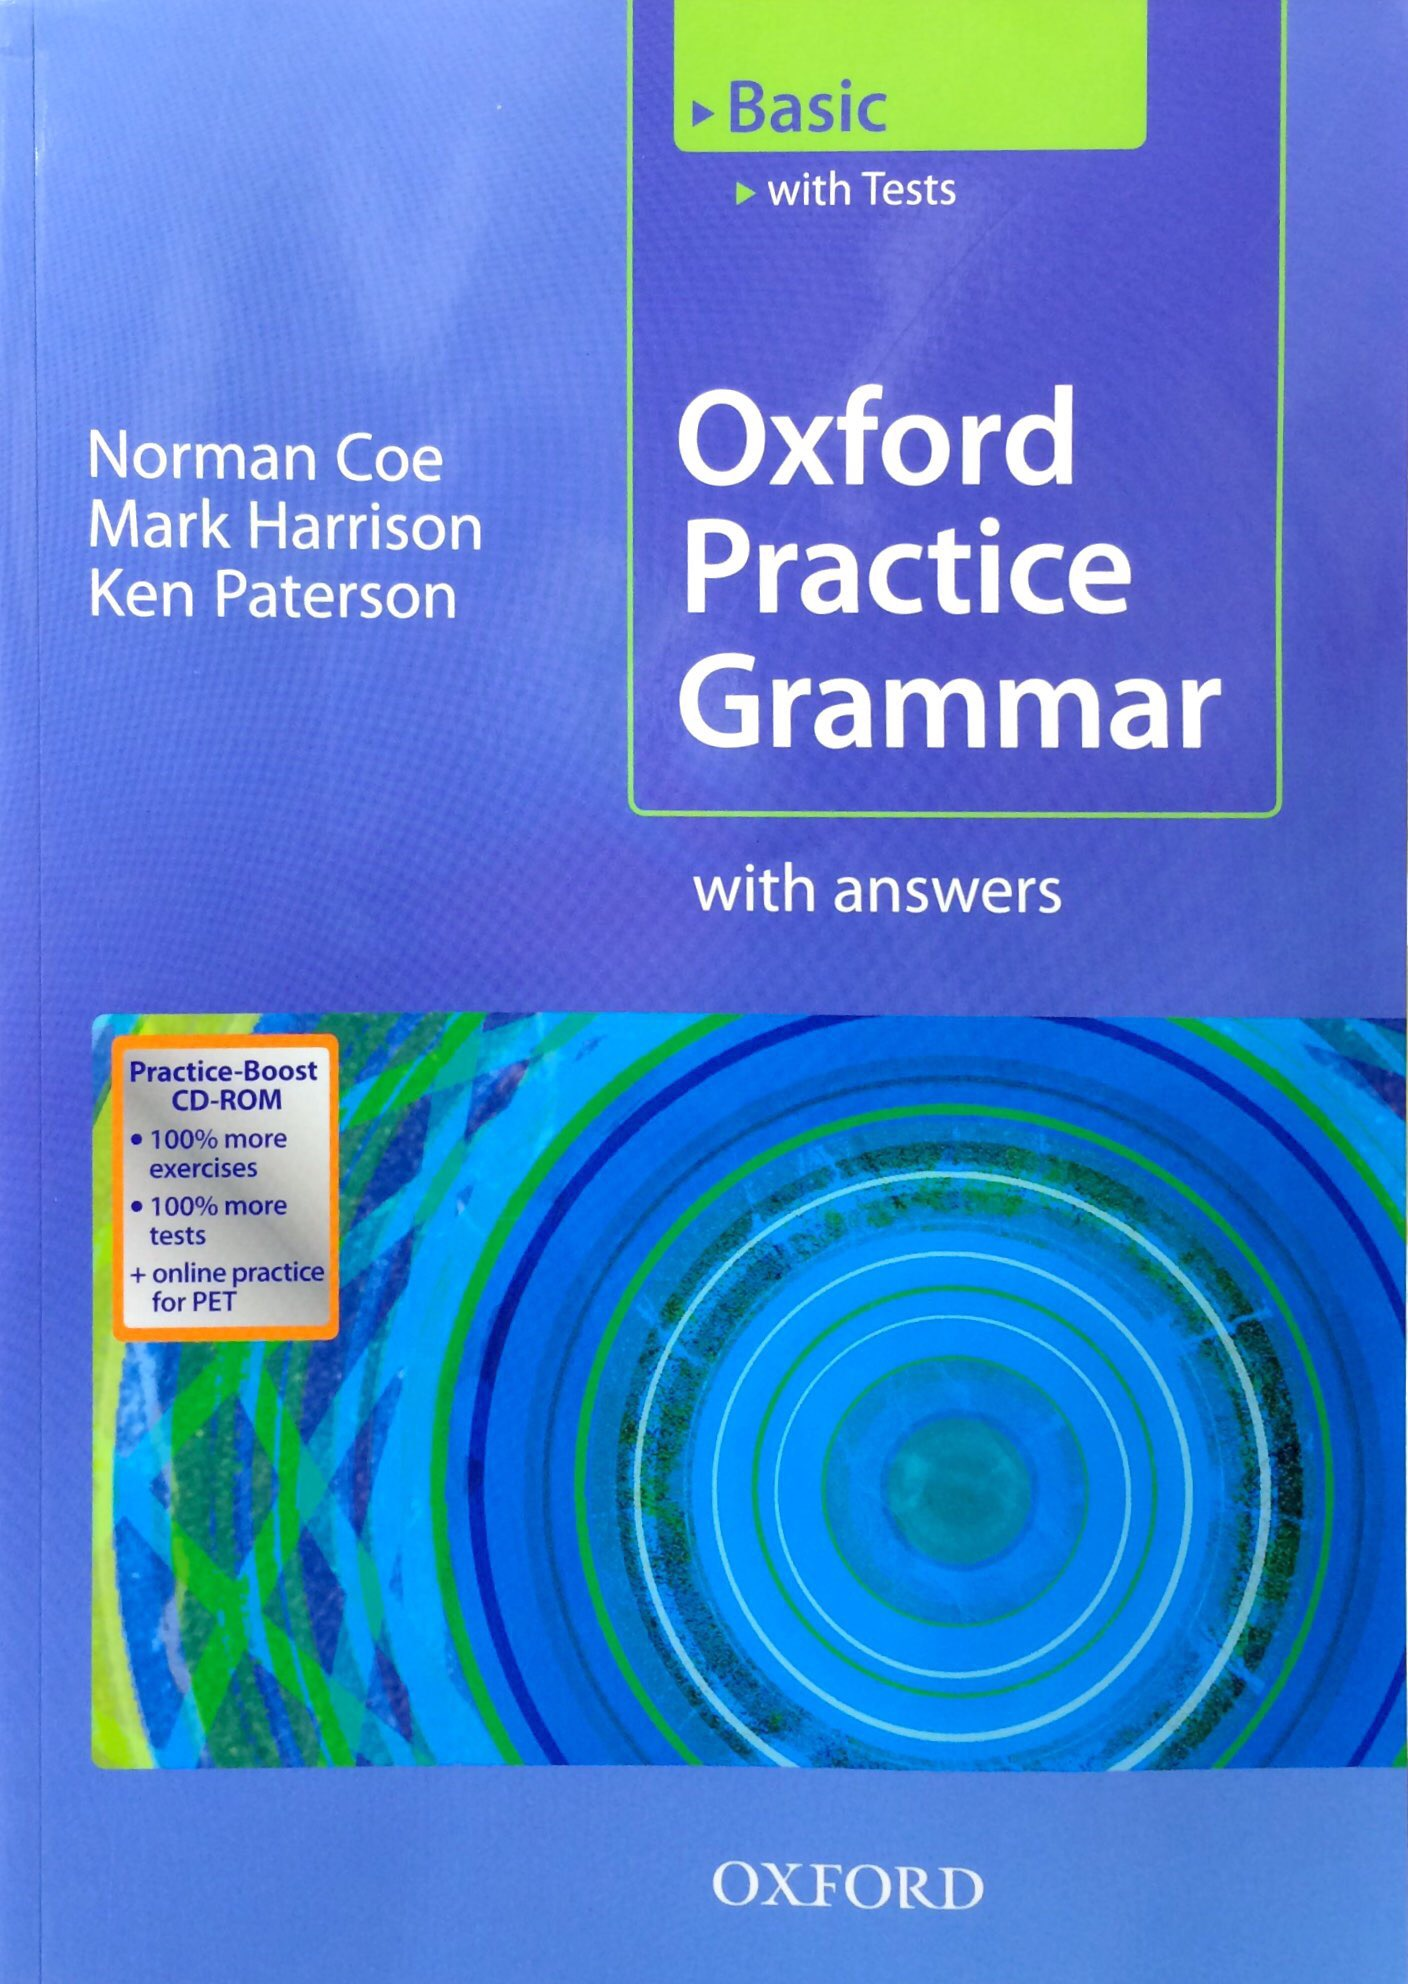 Fahasa - Oxford Practice Grammar Basic Practice-Boost CD-ROM Pack With Key